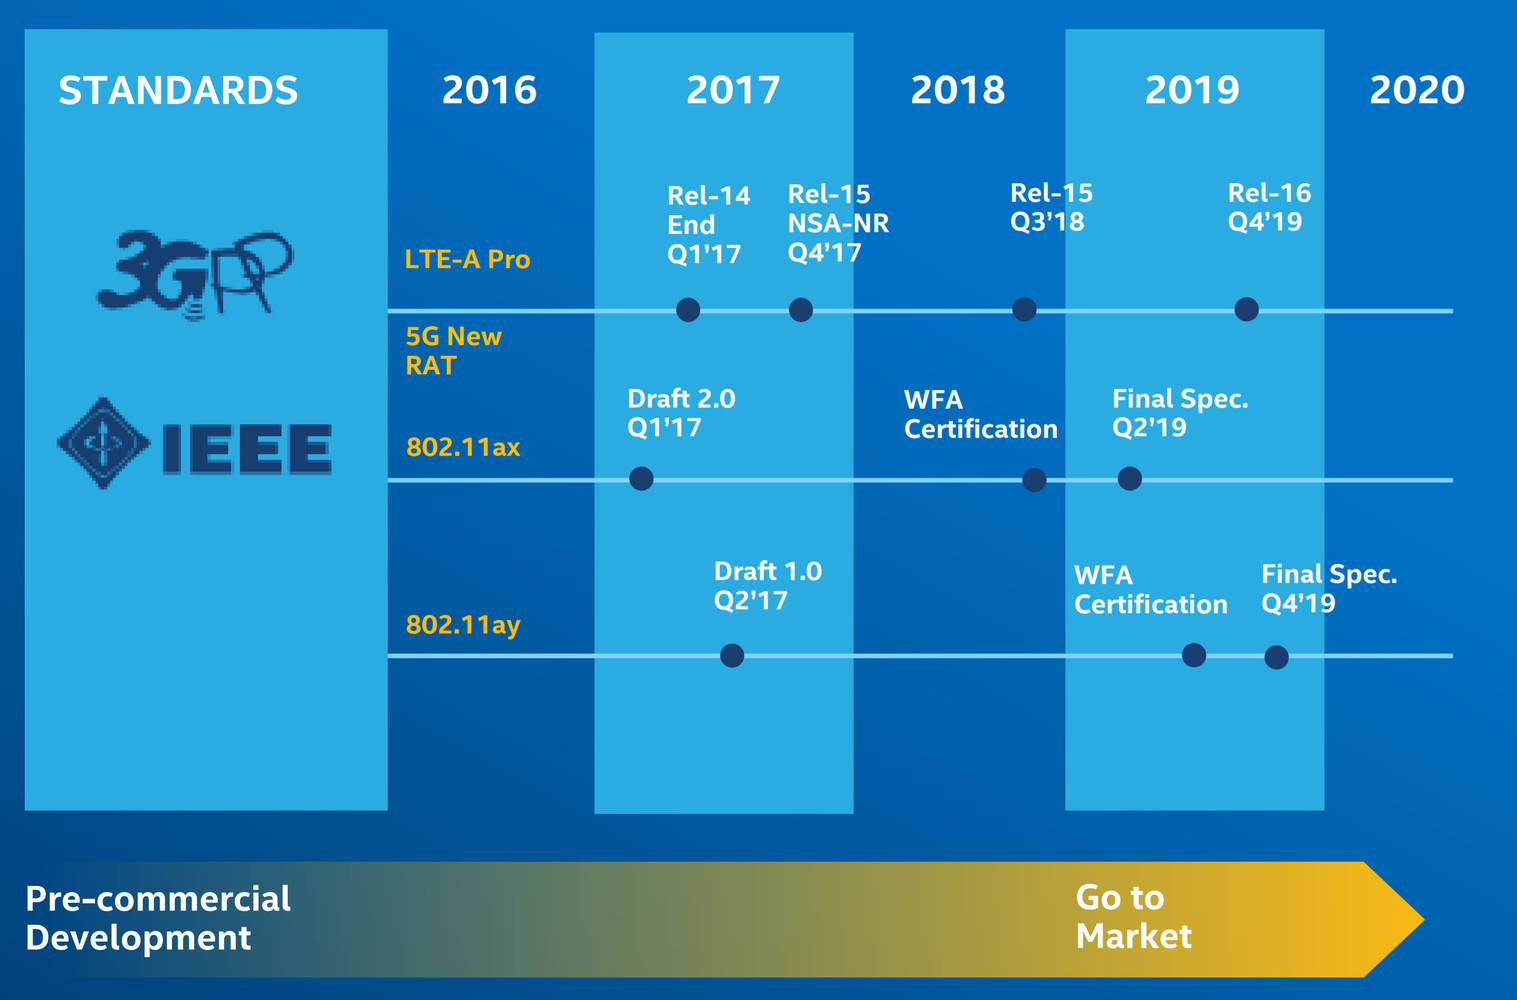 Qualcomm Dramatically Extends Wi-Fi Experiences to the 5G Era with